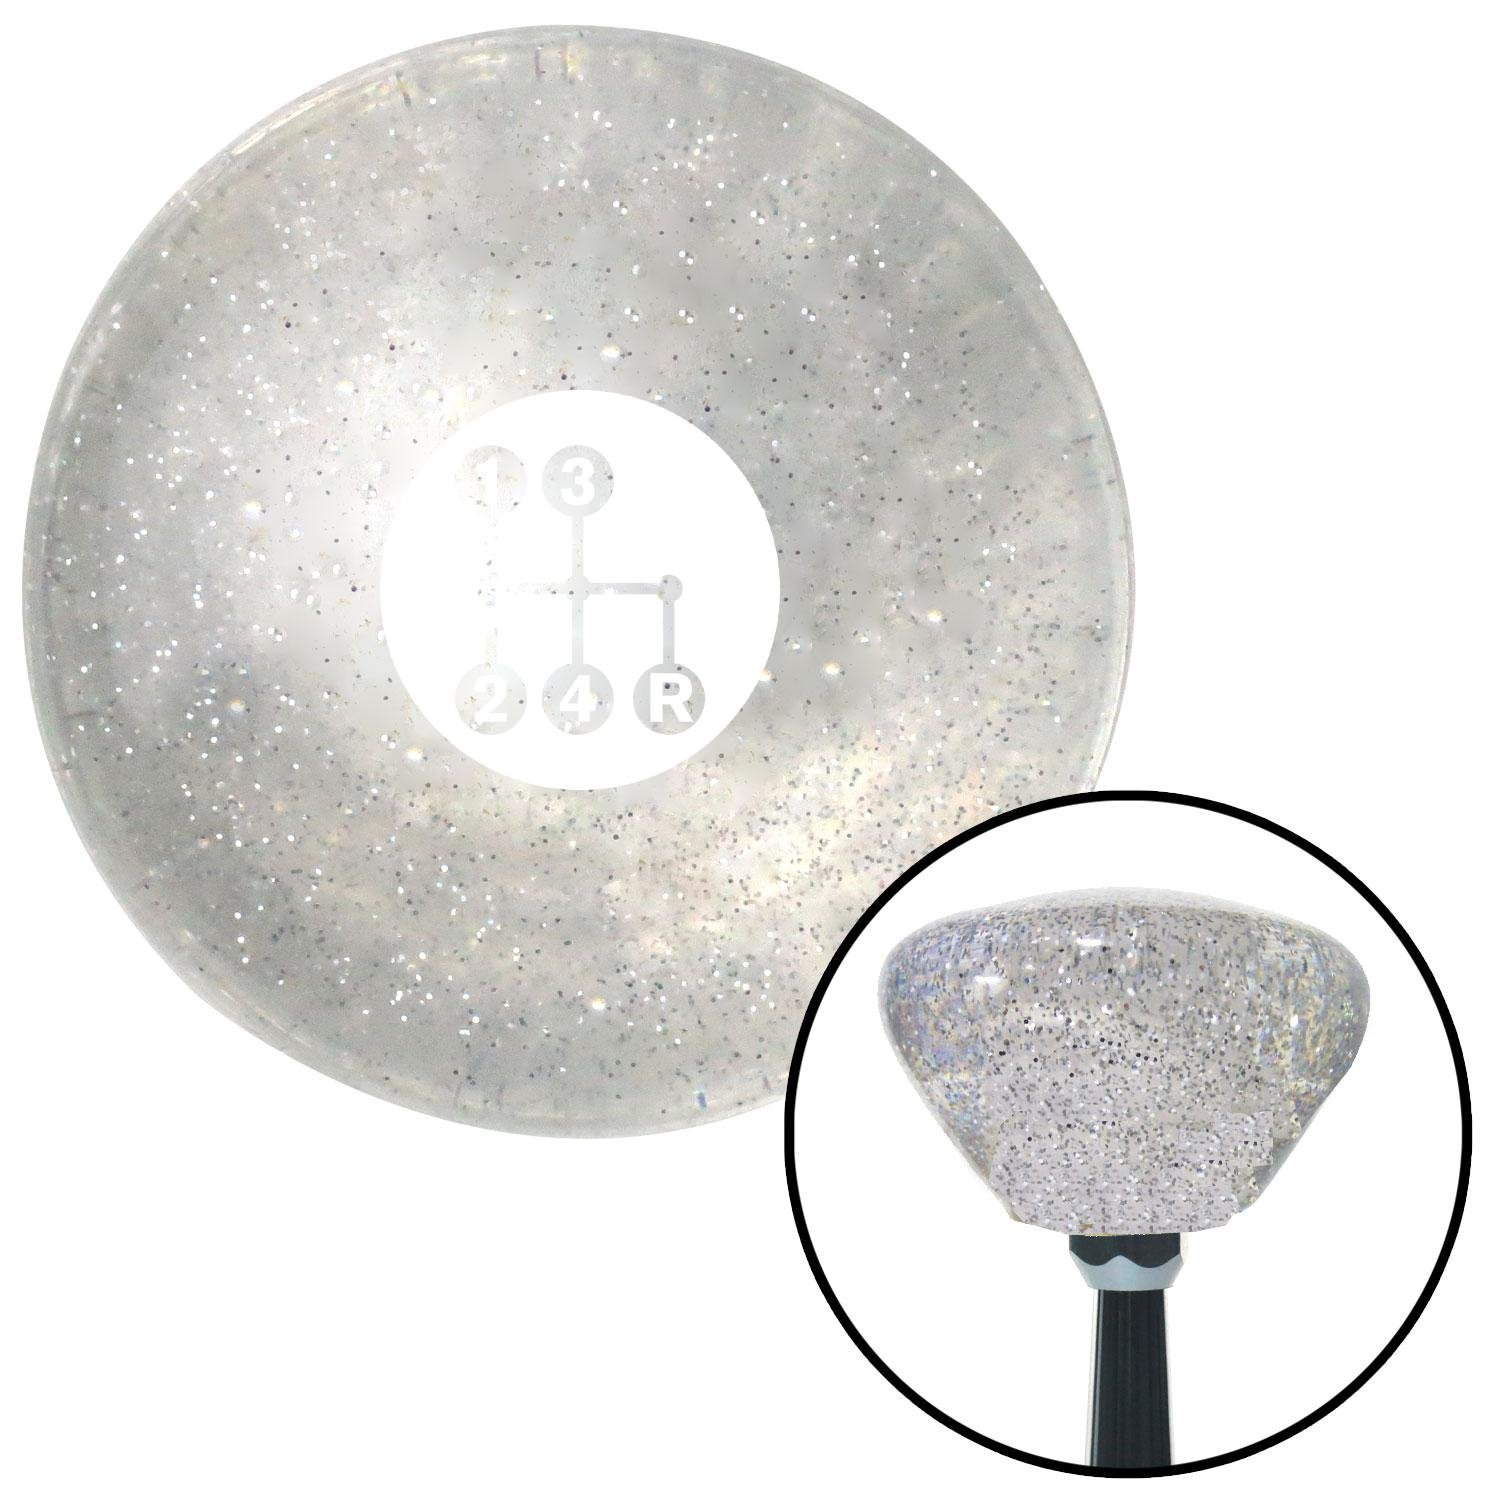 American Shifter 286458 Shift Knob White 4 Speed Shift Pattern - Dots 6 Clear Retro Metal Flake with M16 x 1.5 Insert